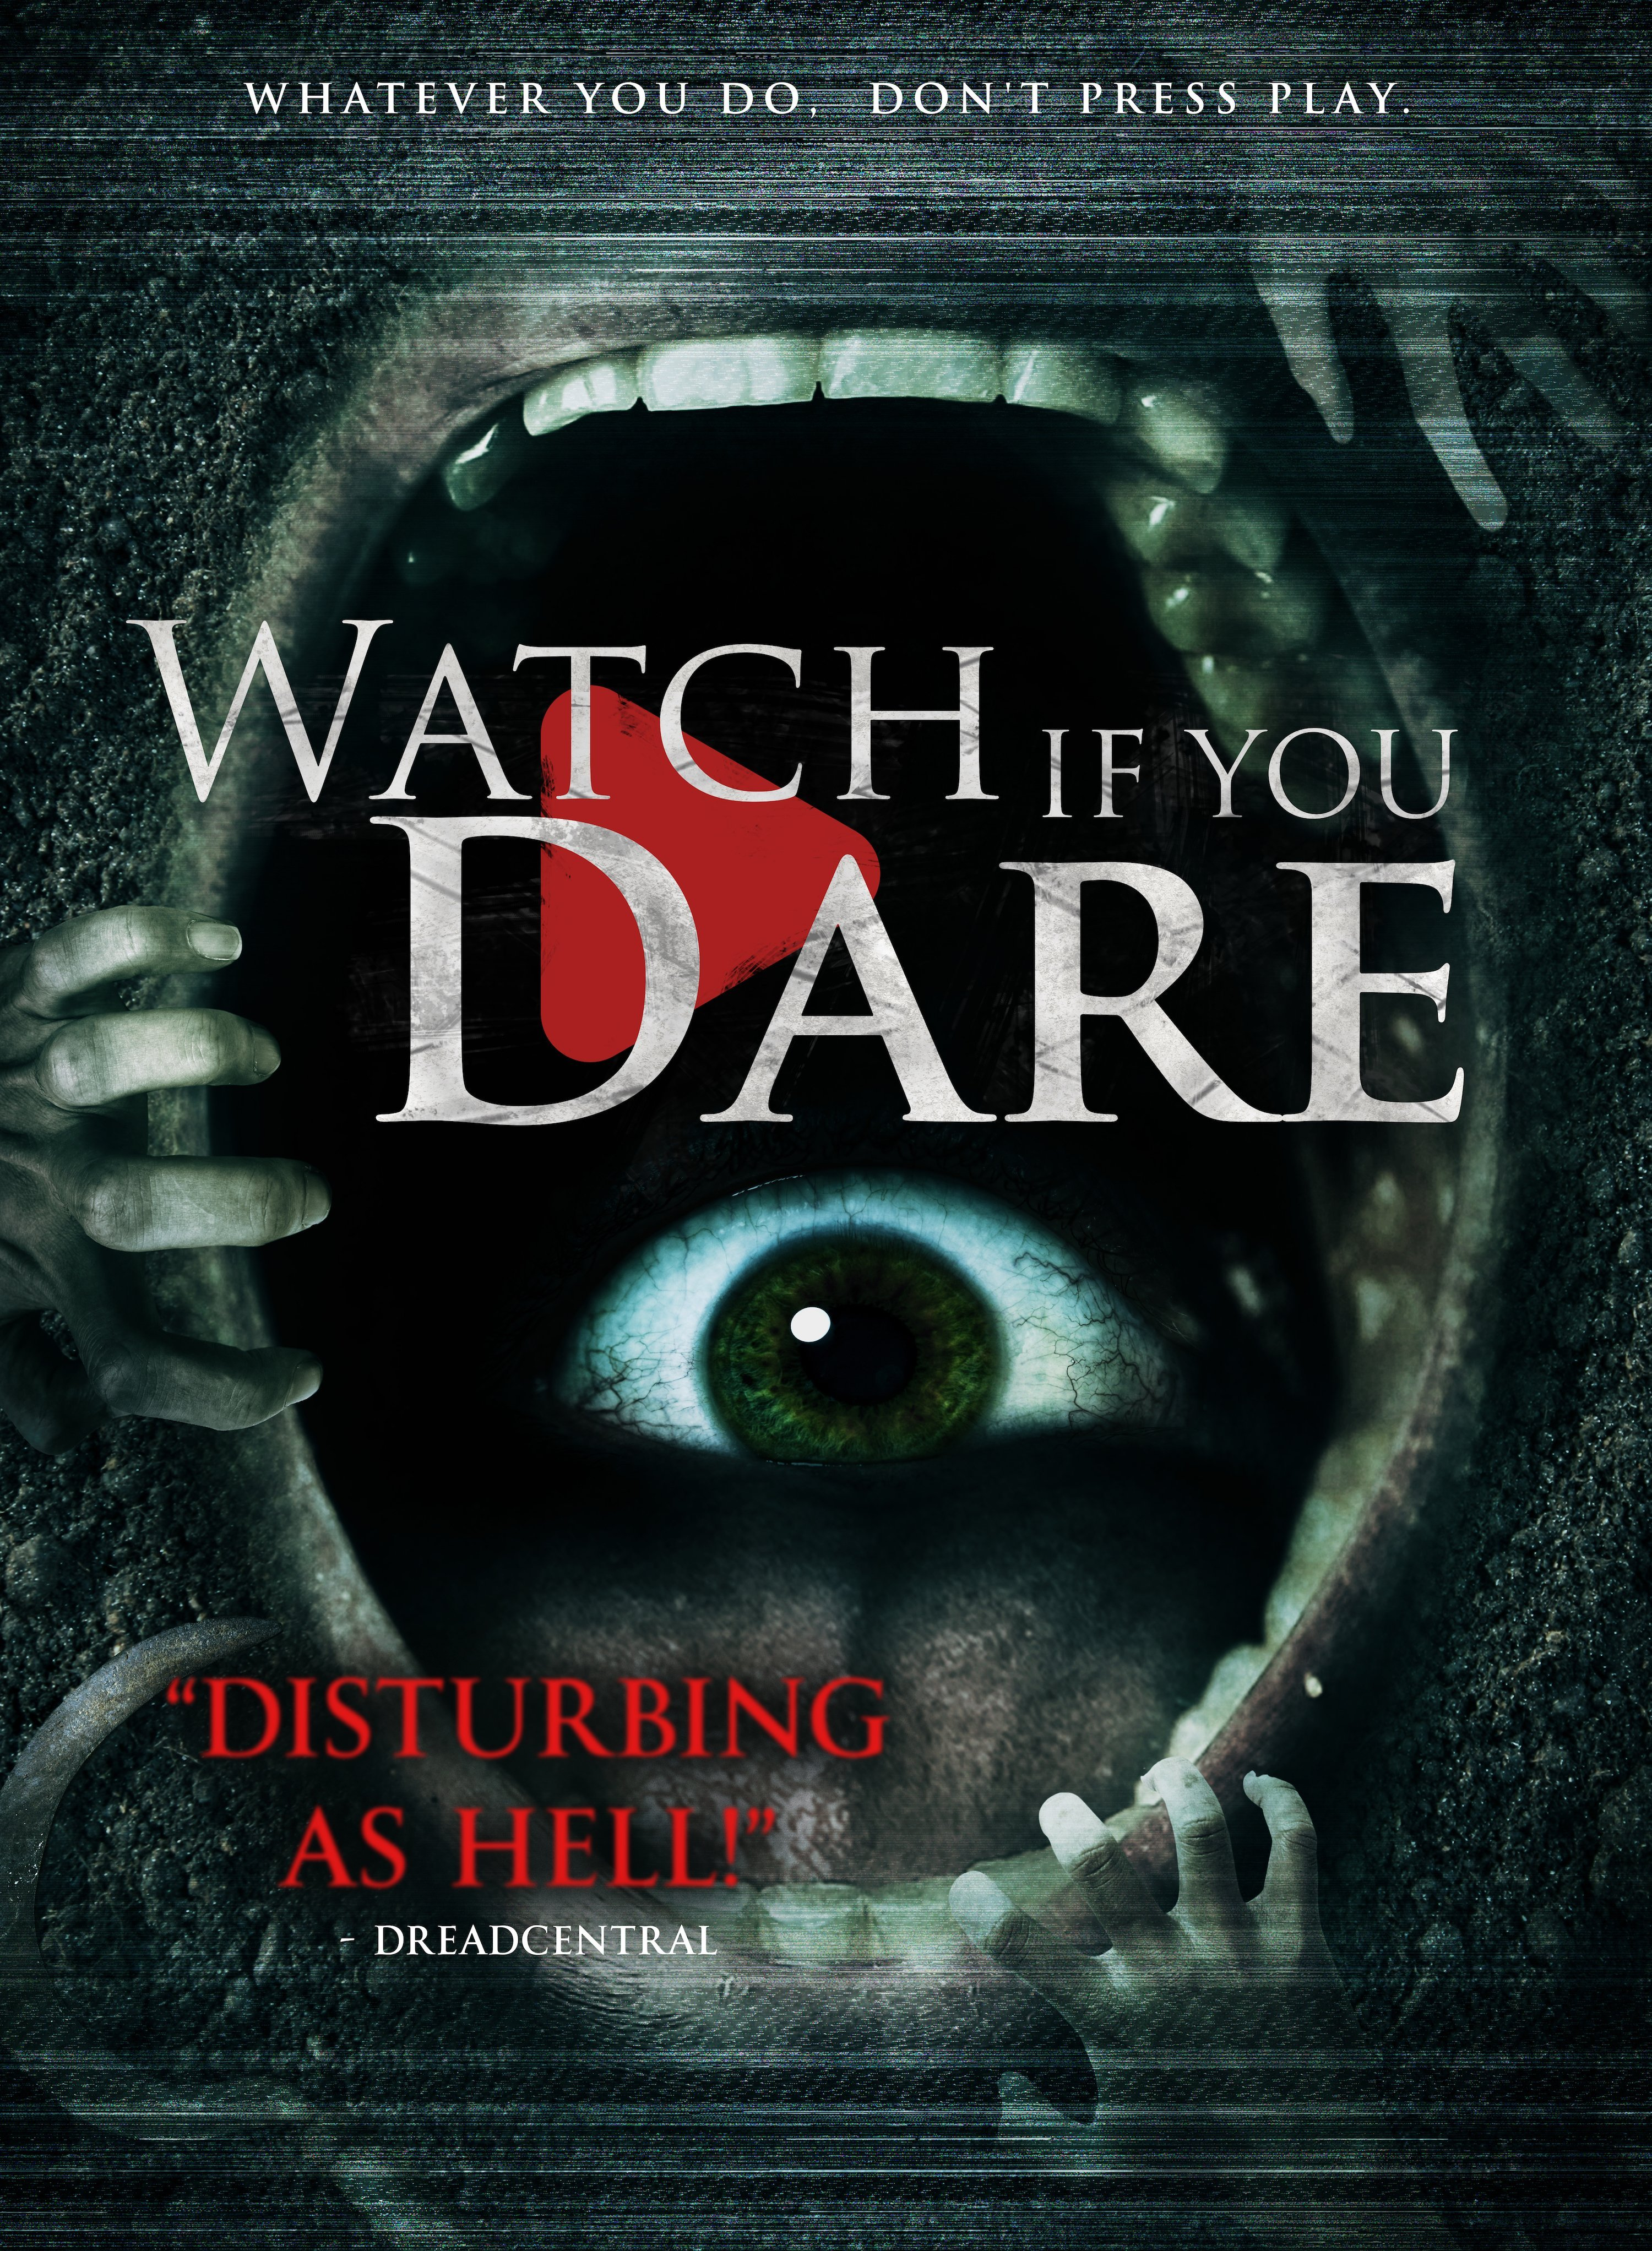 Watch If You Dare (2018) - IMDb